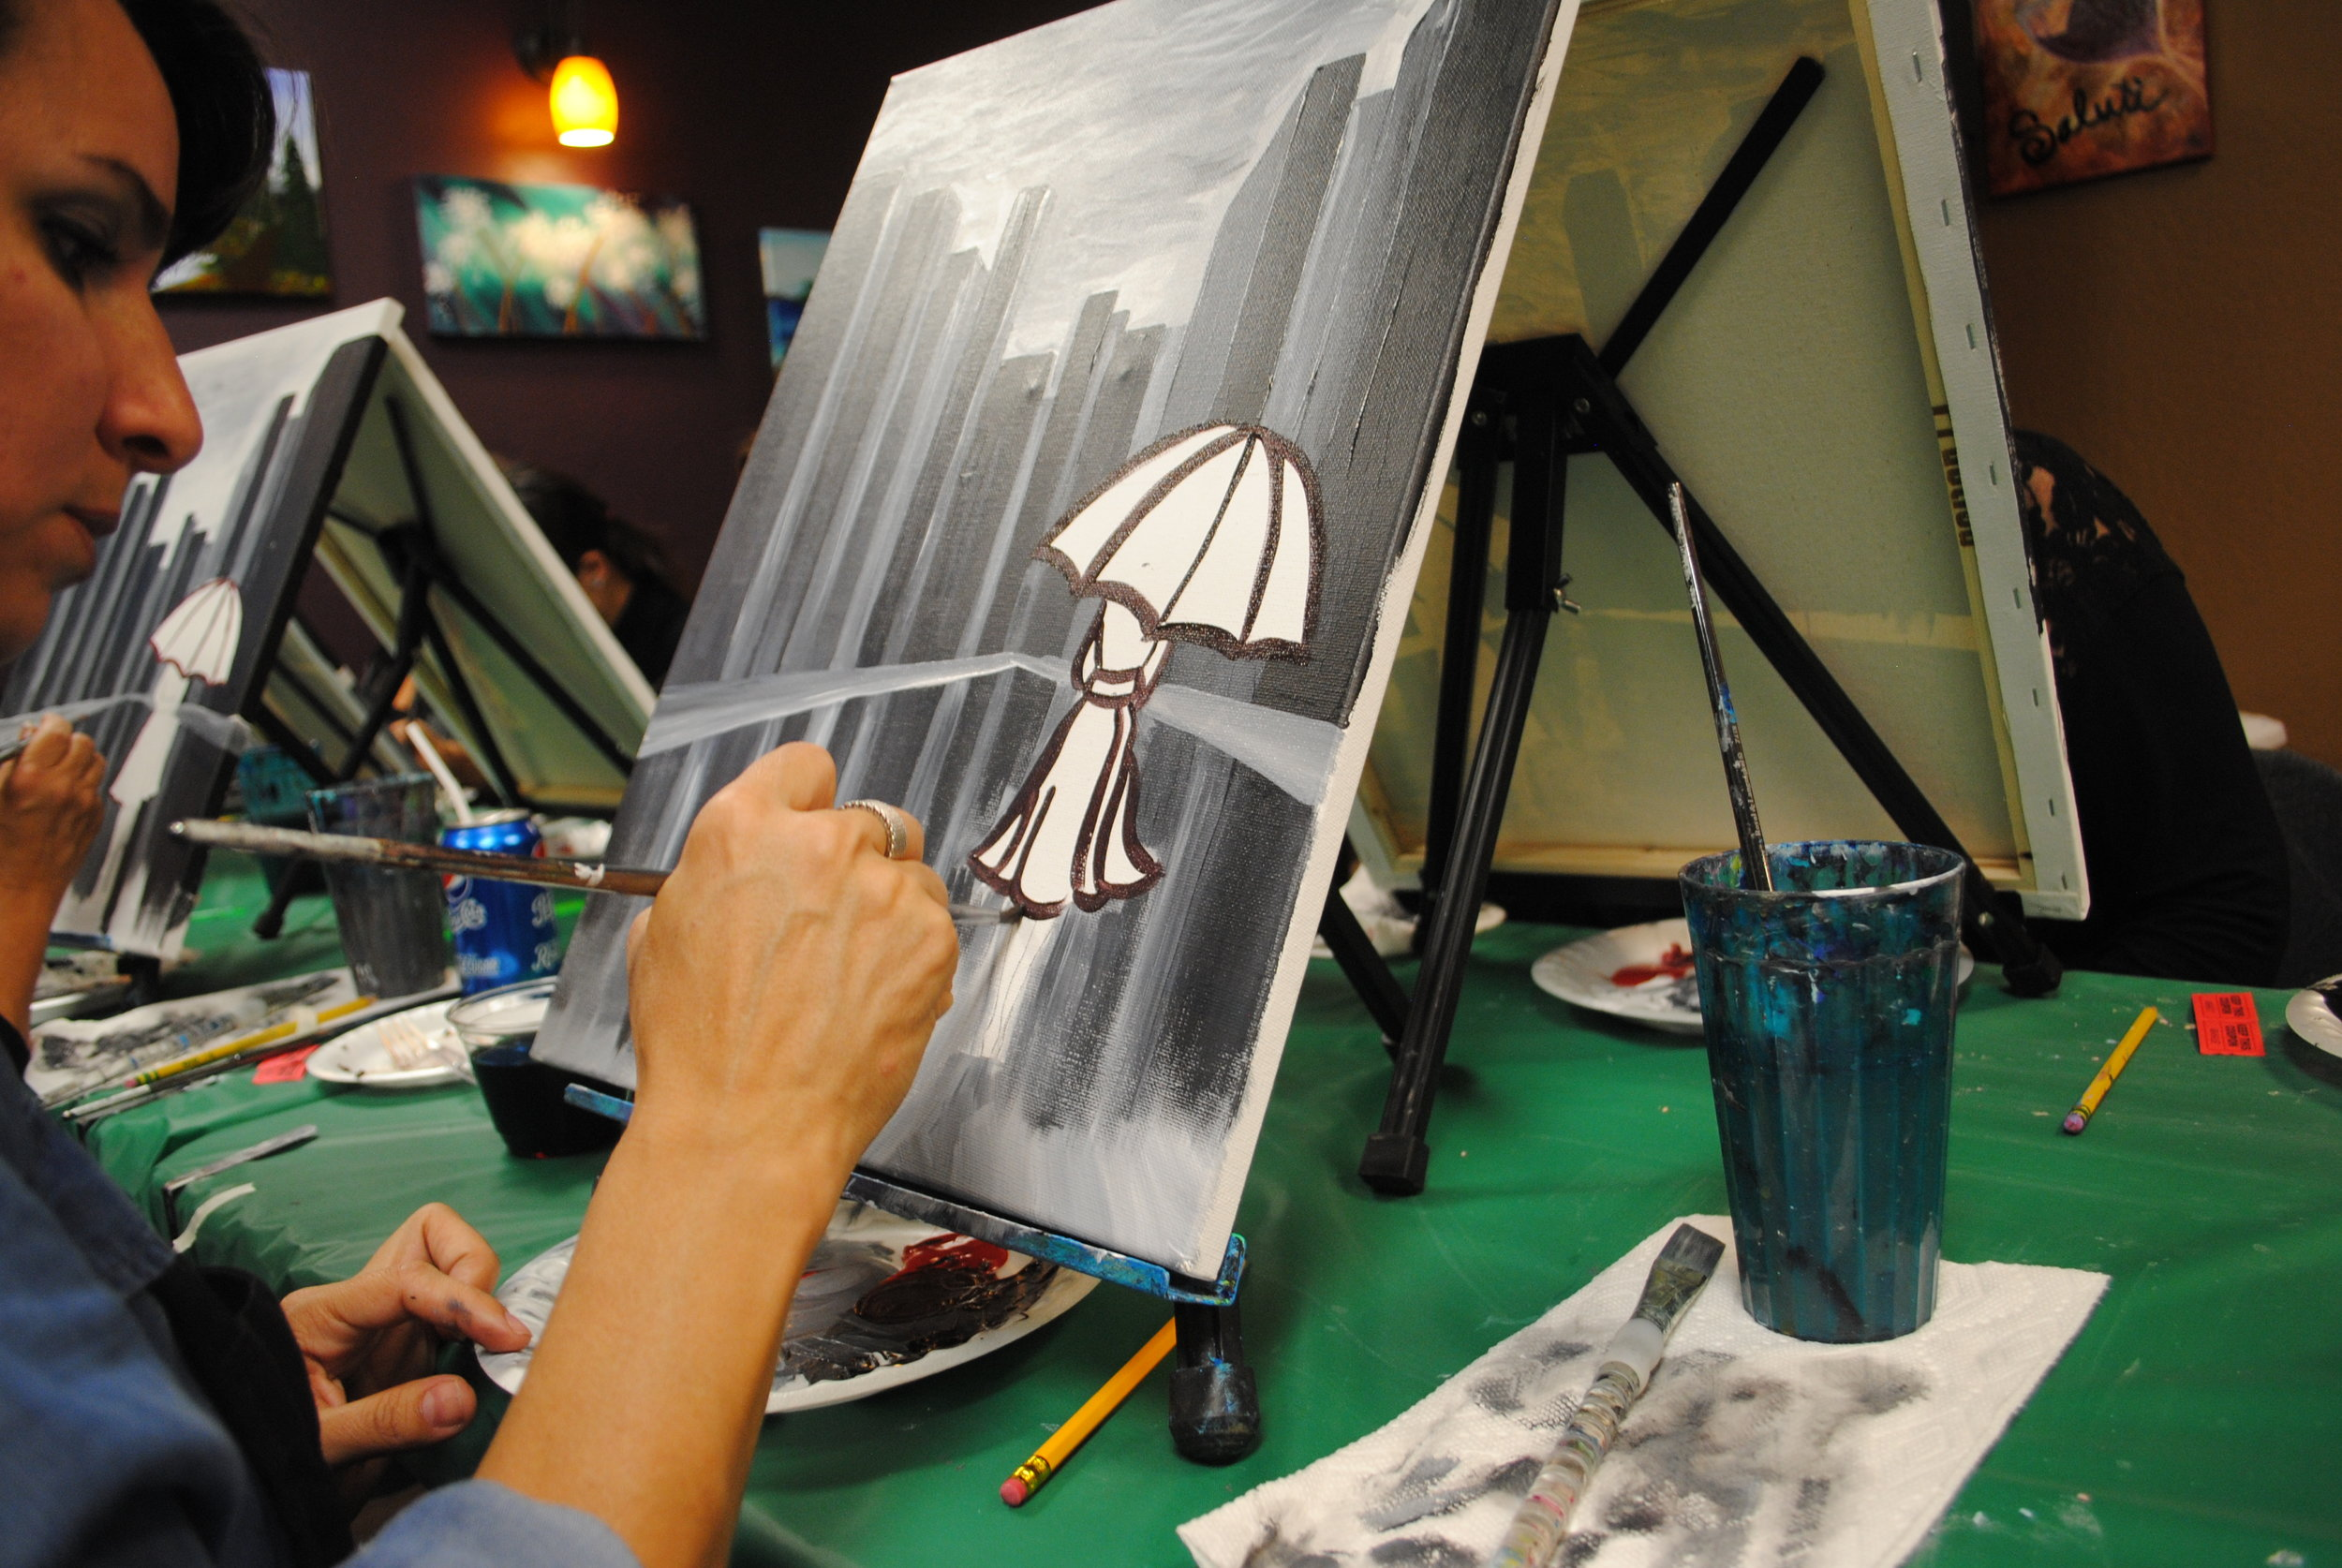 ART 4 JOY - Sip n' Paint - Central Point - What to do in Southern Oregon - Things to do - Events - Girls Night - Family - Kids (26).JPG